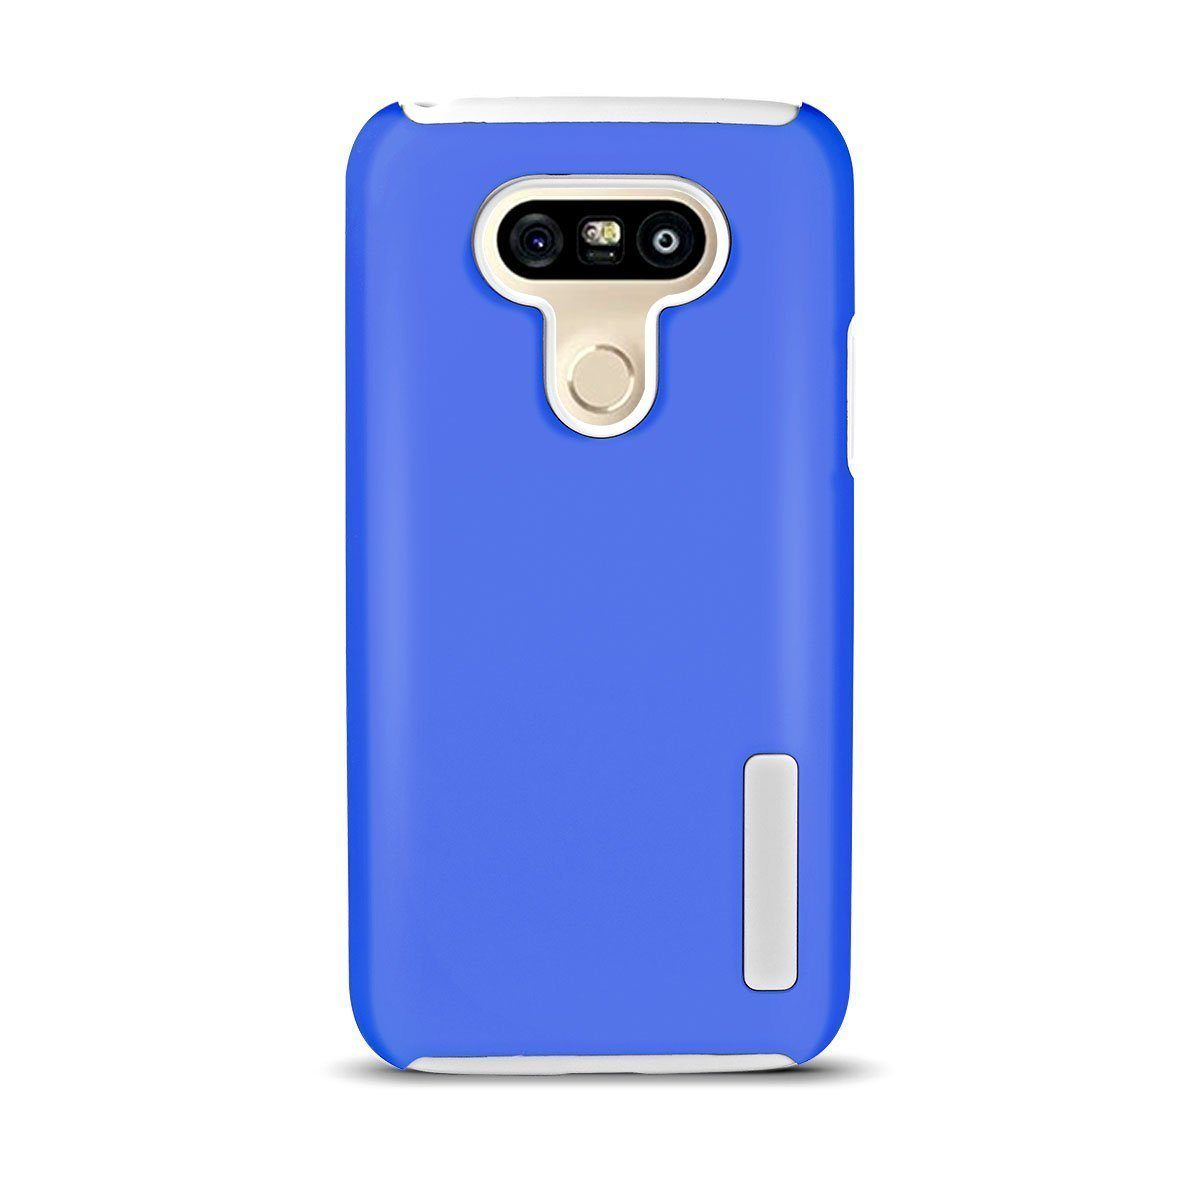 Ink Case for LG G5 - Blue